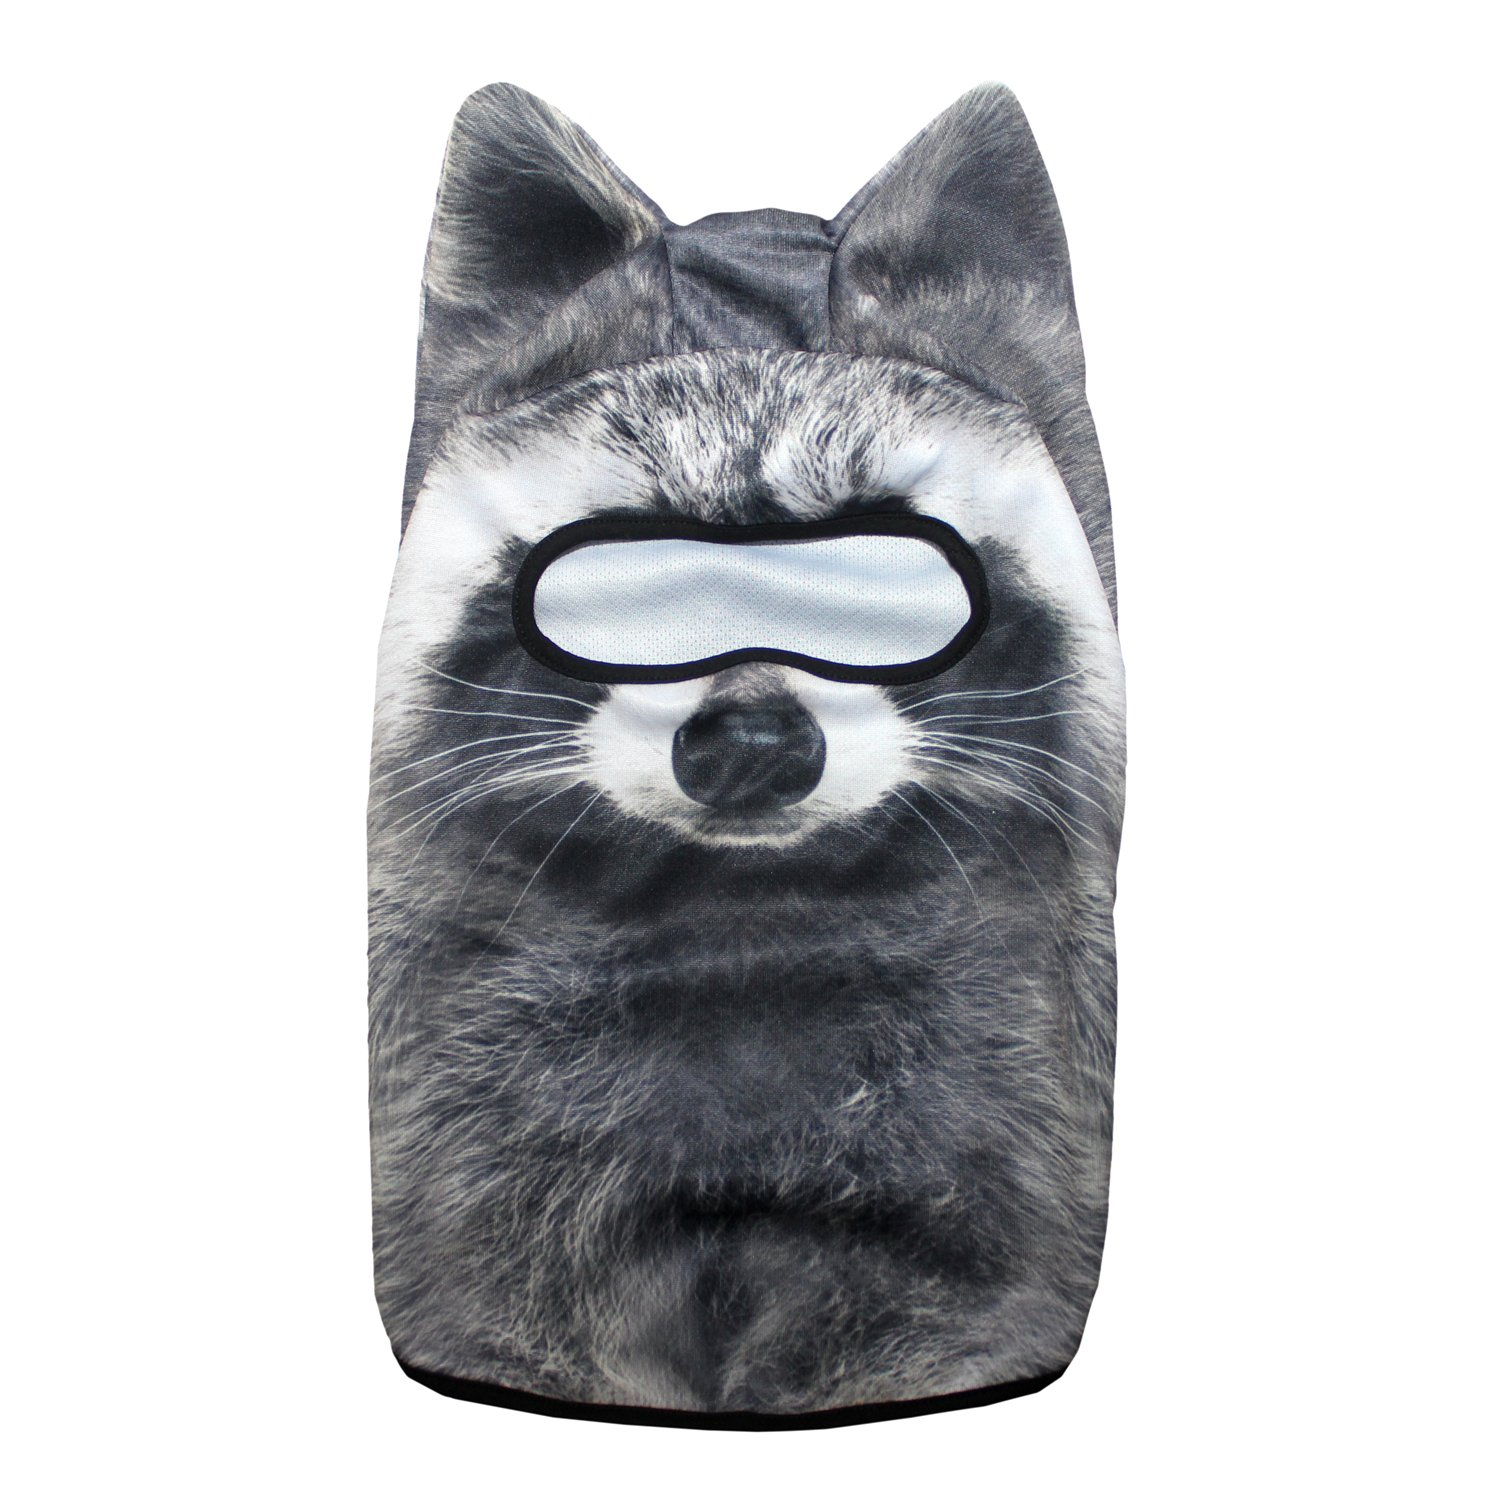 Halloween Party Outdoor Activities Ski JIUSY 3D Stand Ears Animal Balaclava Face Mask for Music Festivals Raves